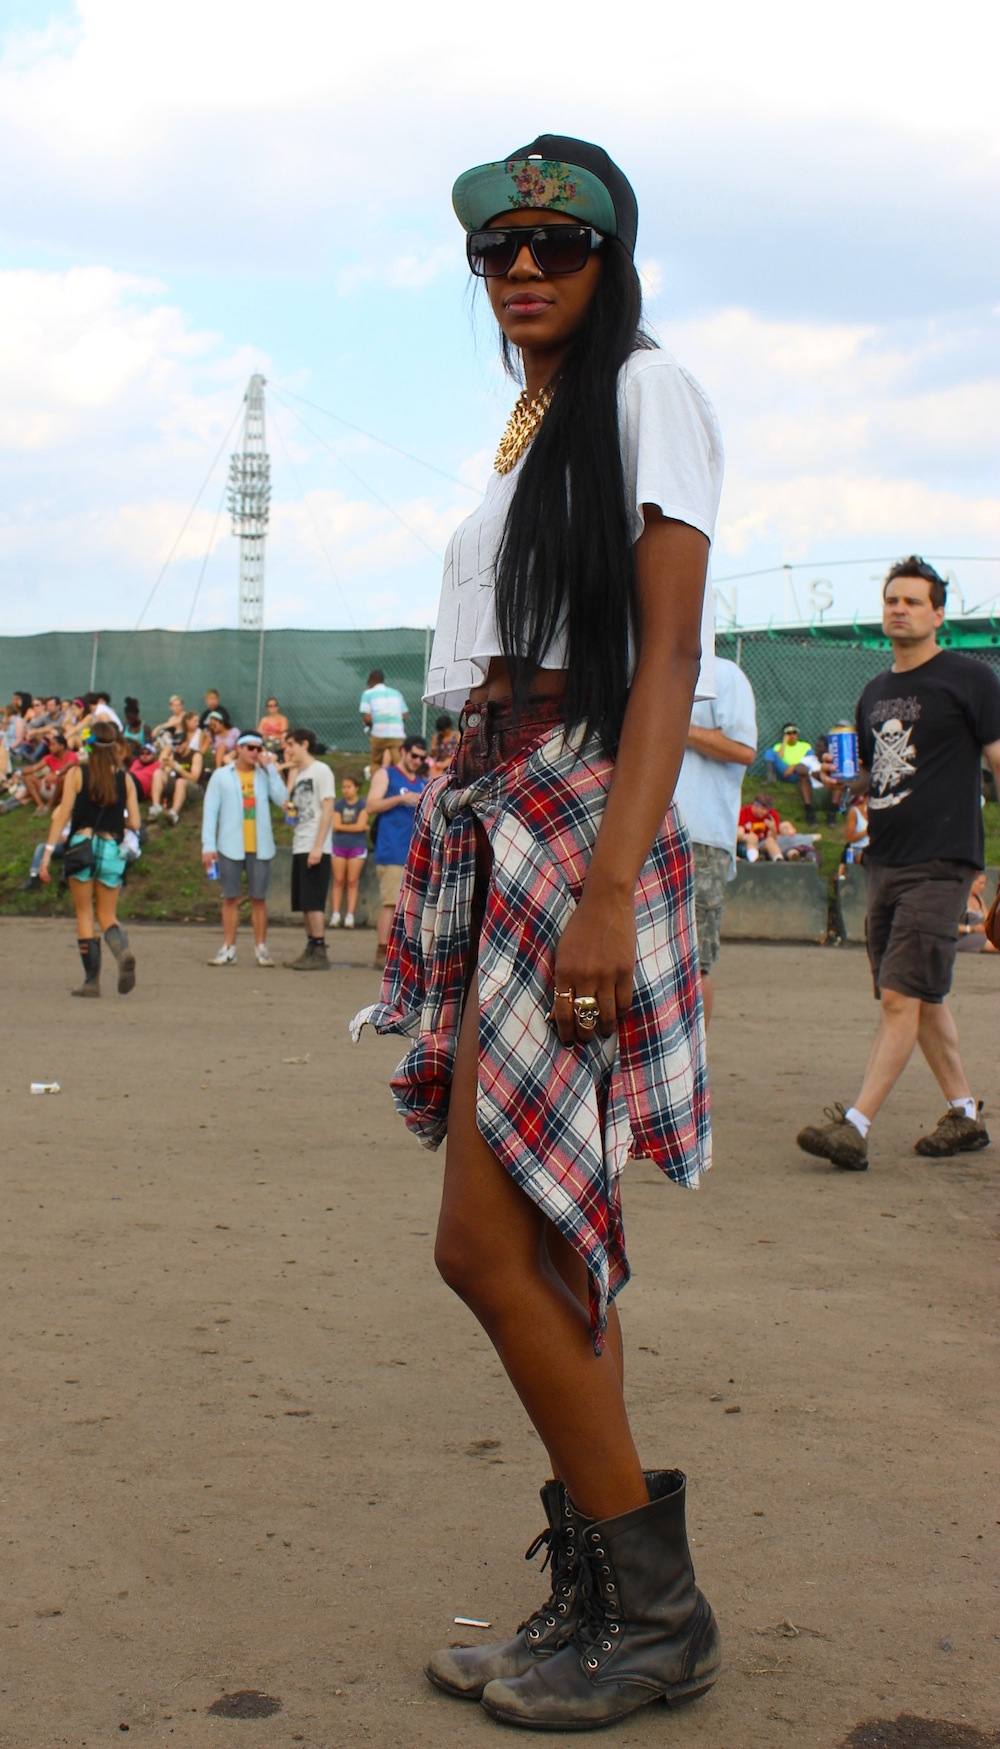 Leeann from New York at Governors Ball 2013 Style